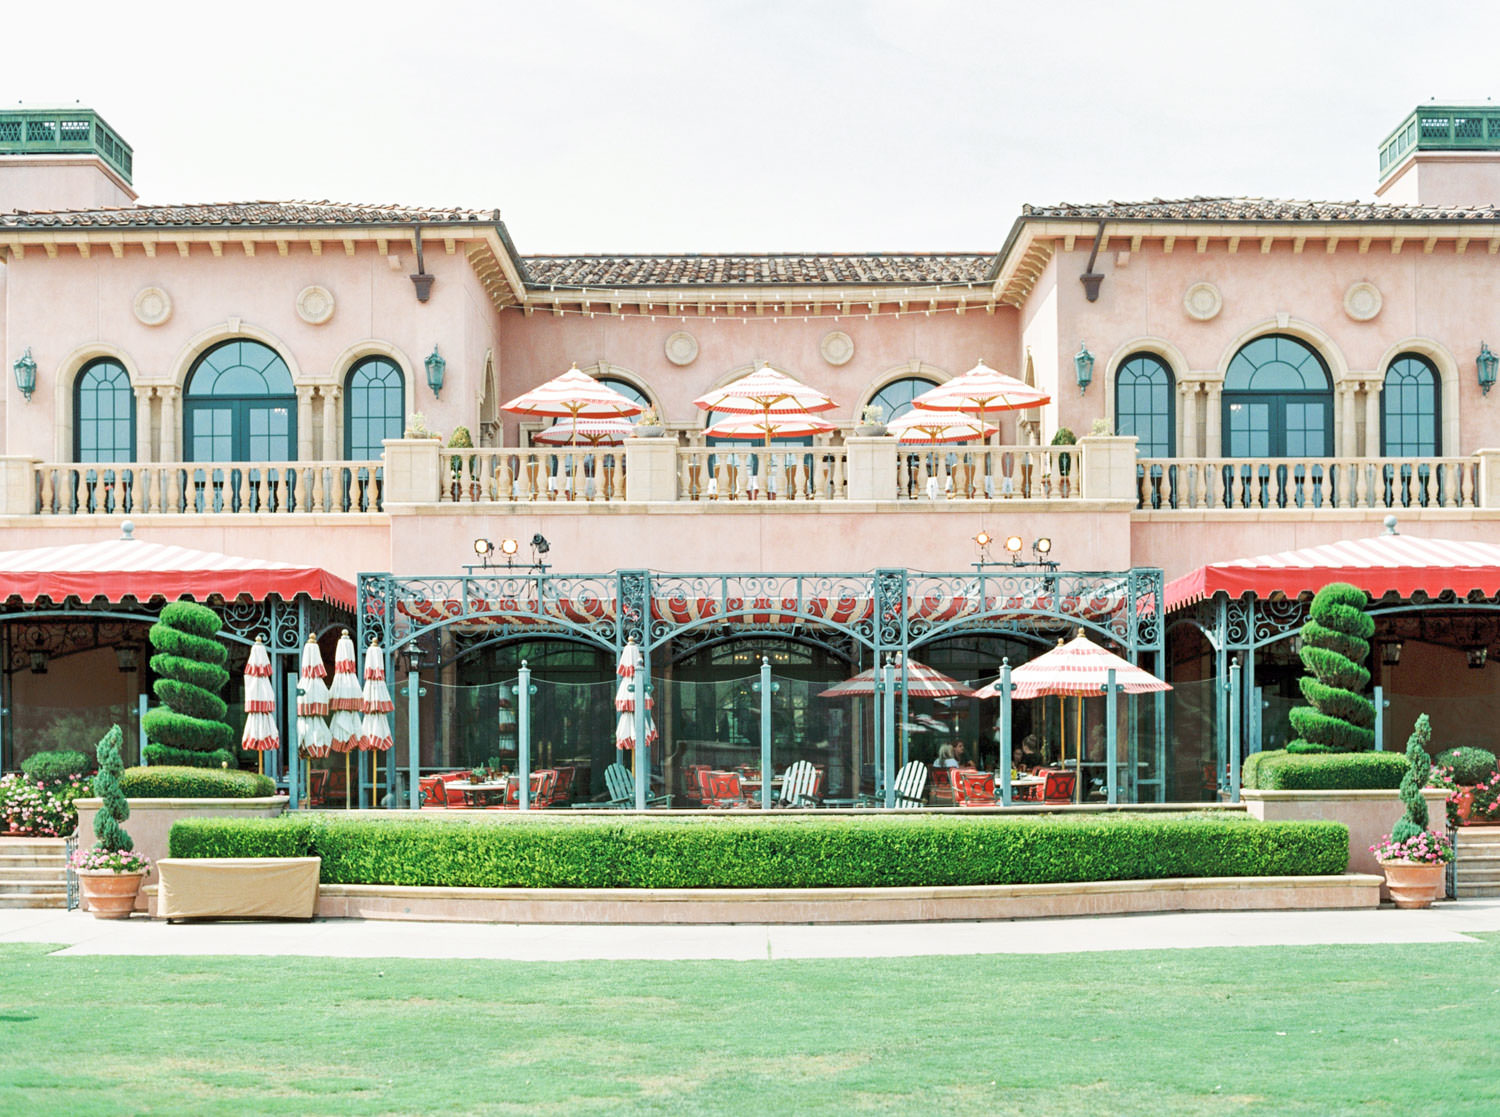 Aria Lawn, Weddings at the Fairmont Grand Del Mar in San Diego, Luxury Mediterranean European inspired venue, film by Cavin Elizabeth Photography